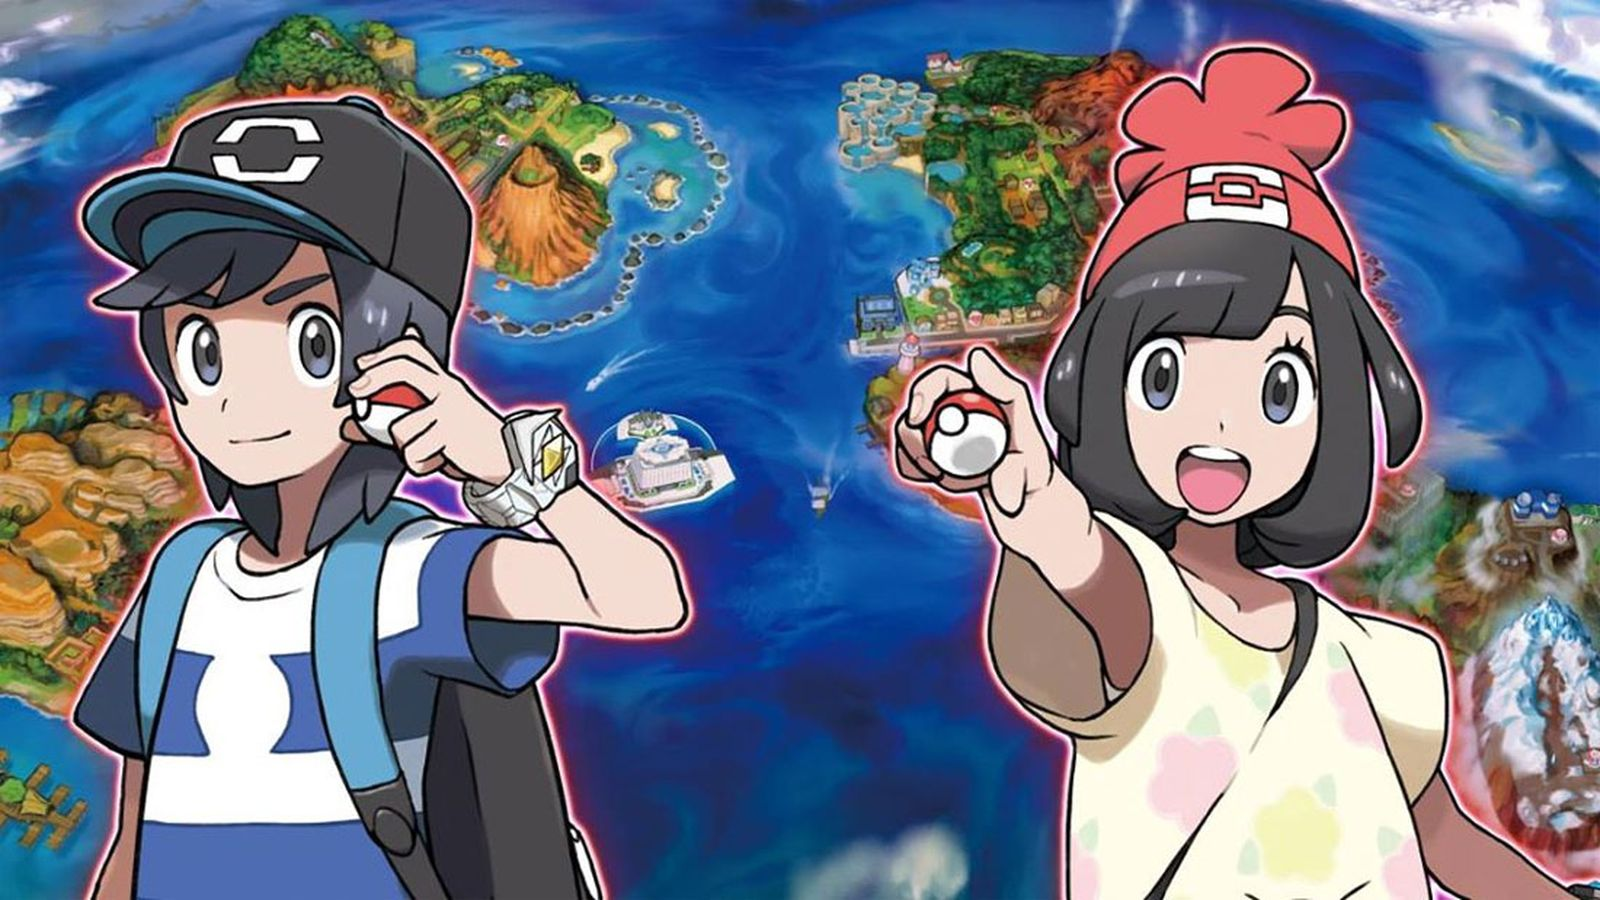 Two new Pokemon revealed for Pokemon Sun and Moon along